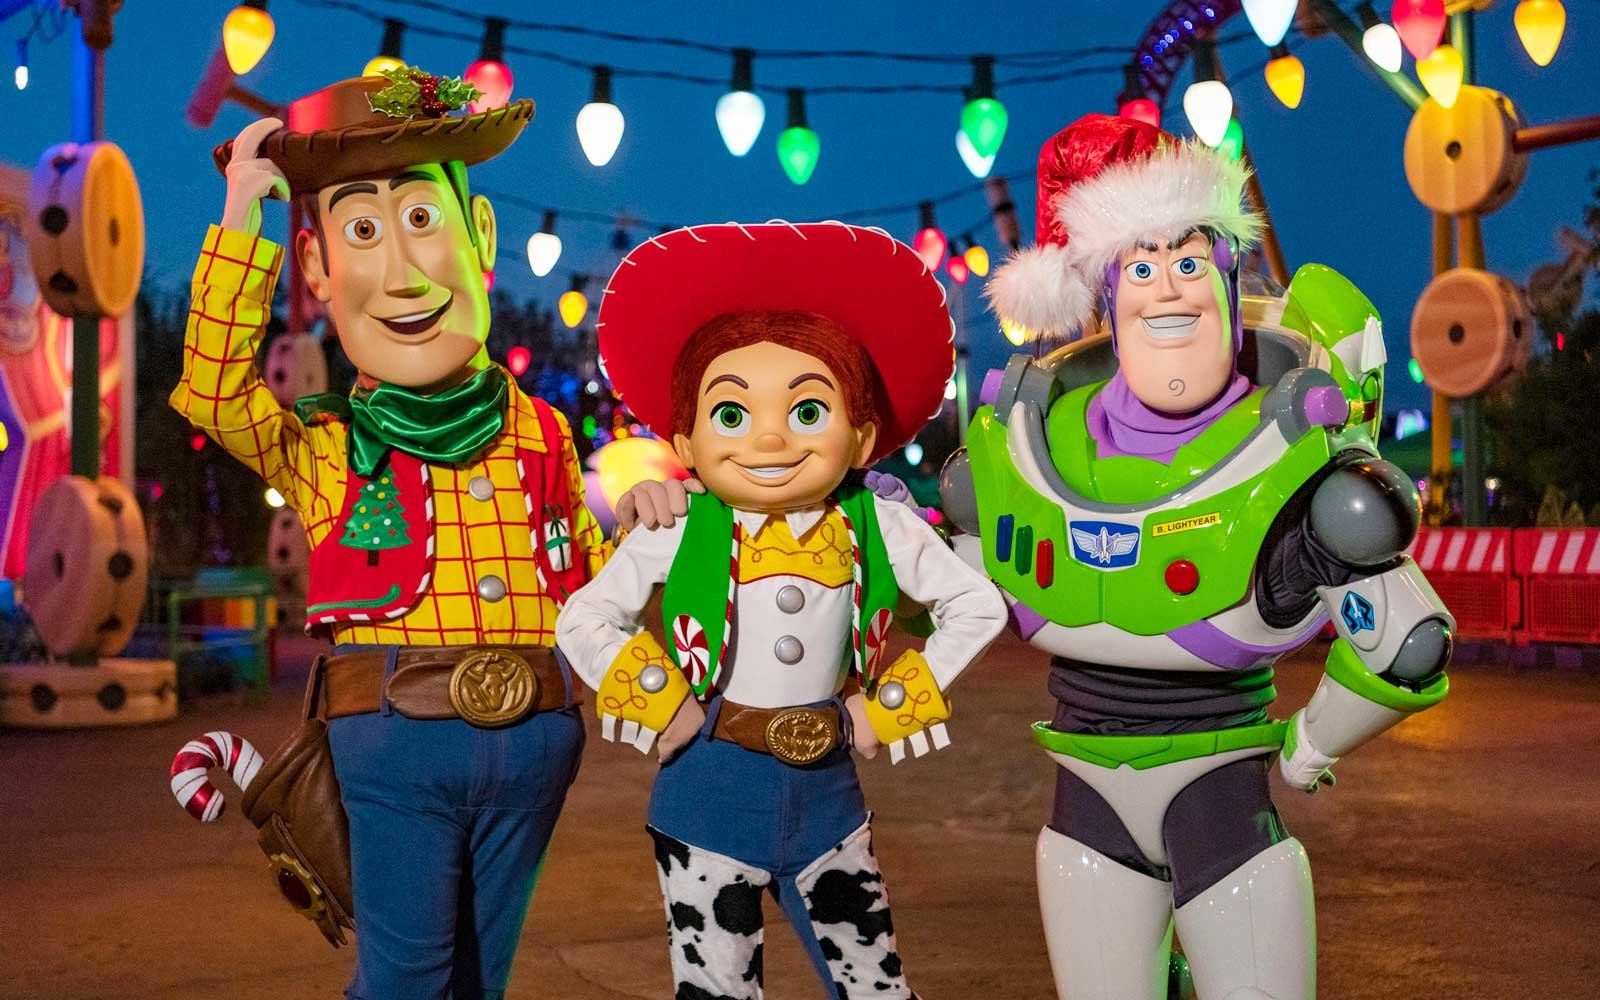 Characters at Toy Story Land dressed up for Christmas